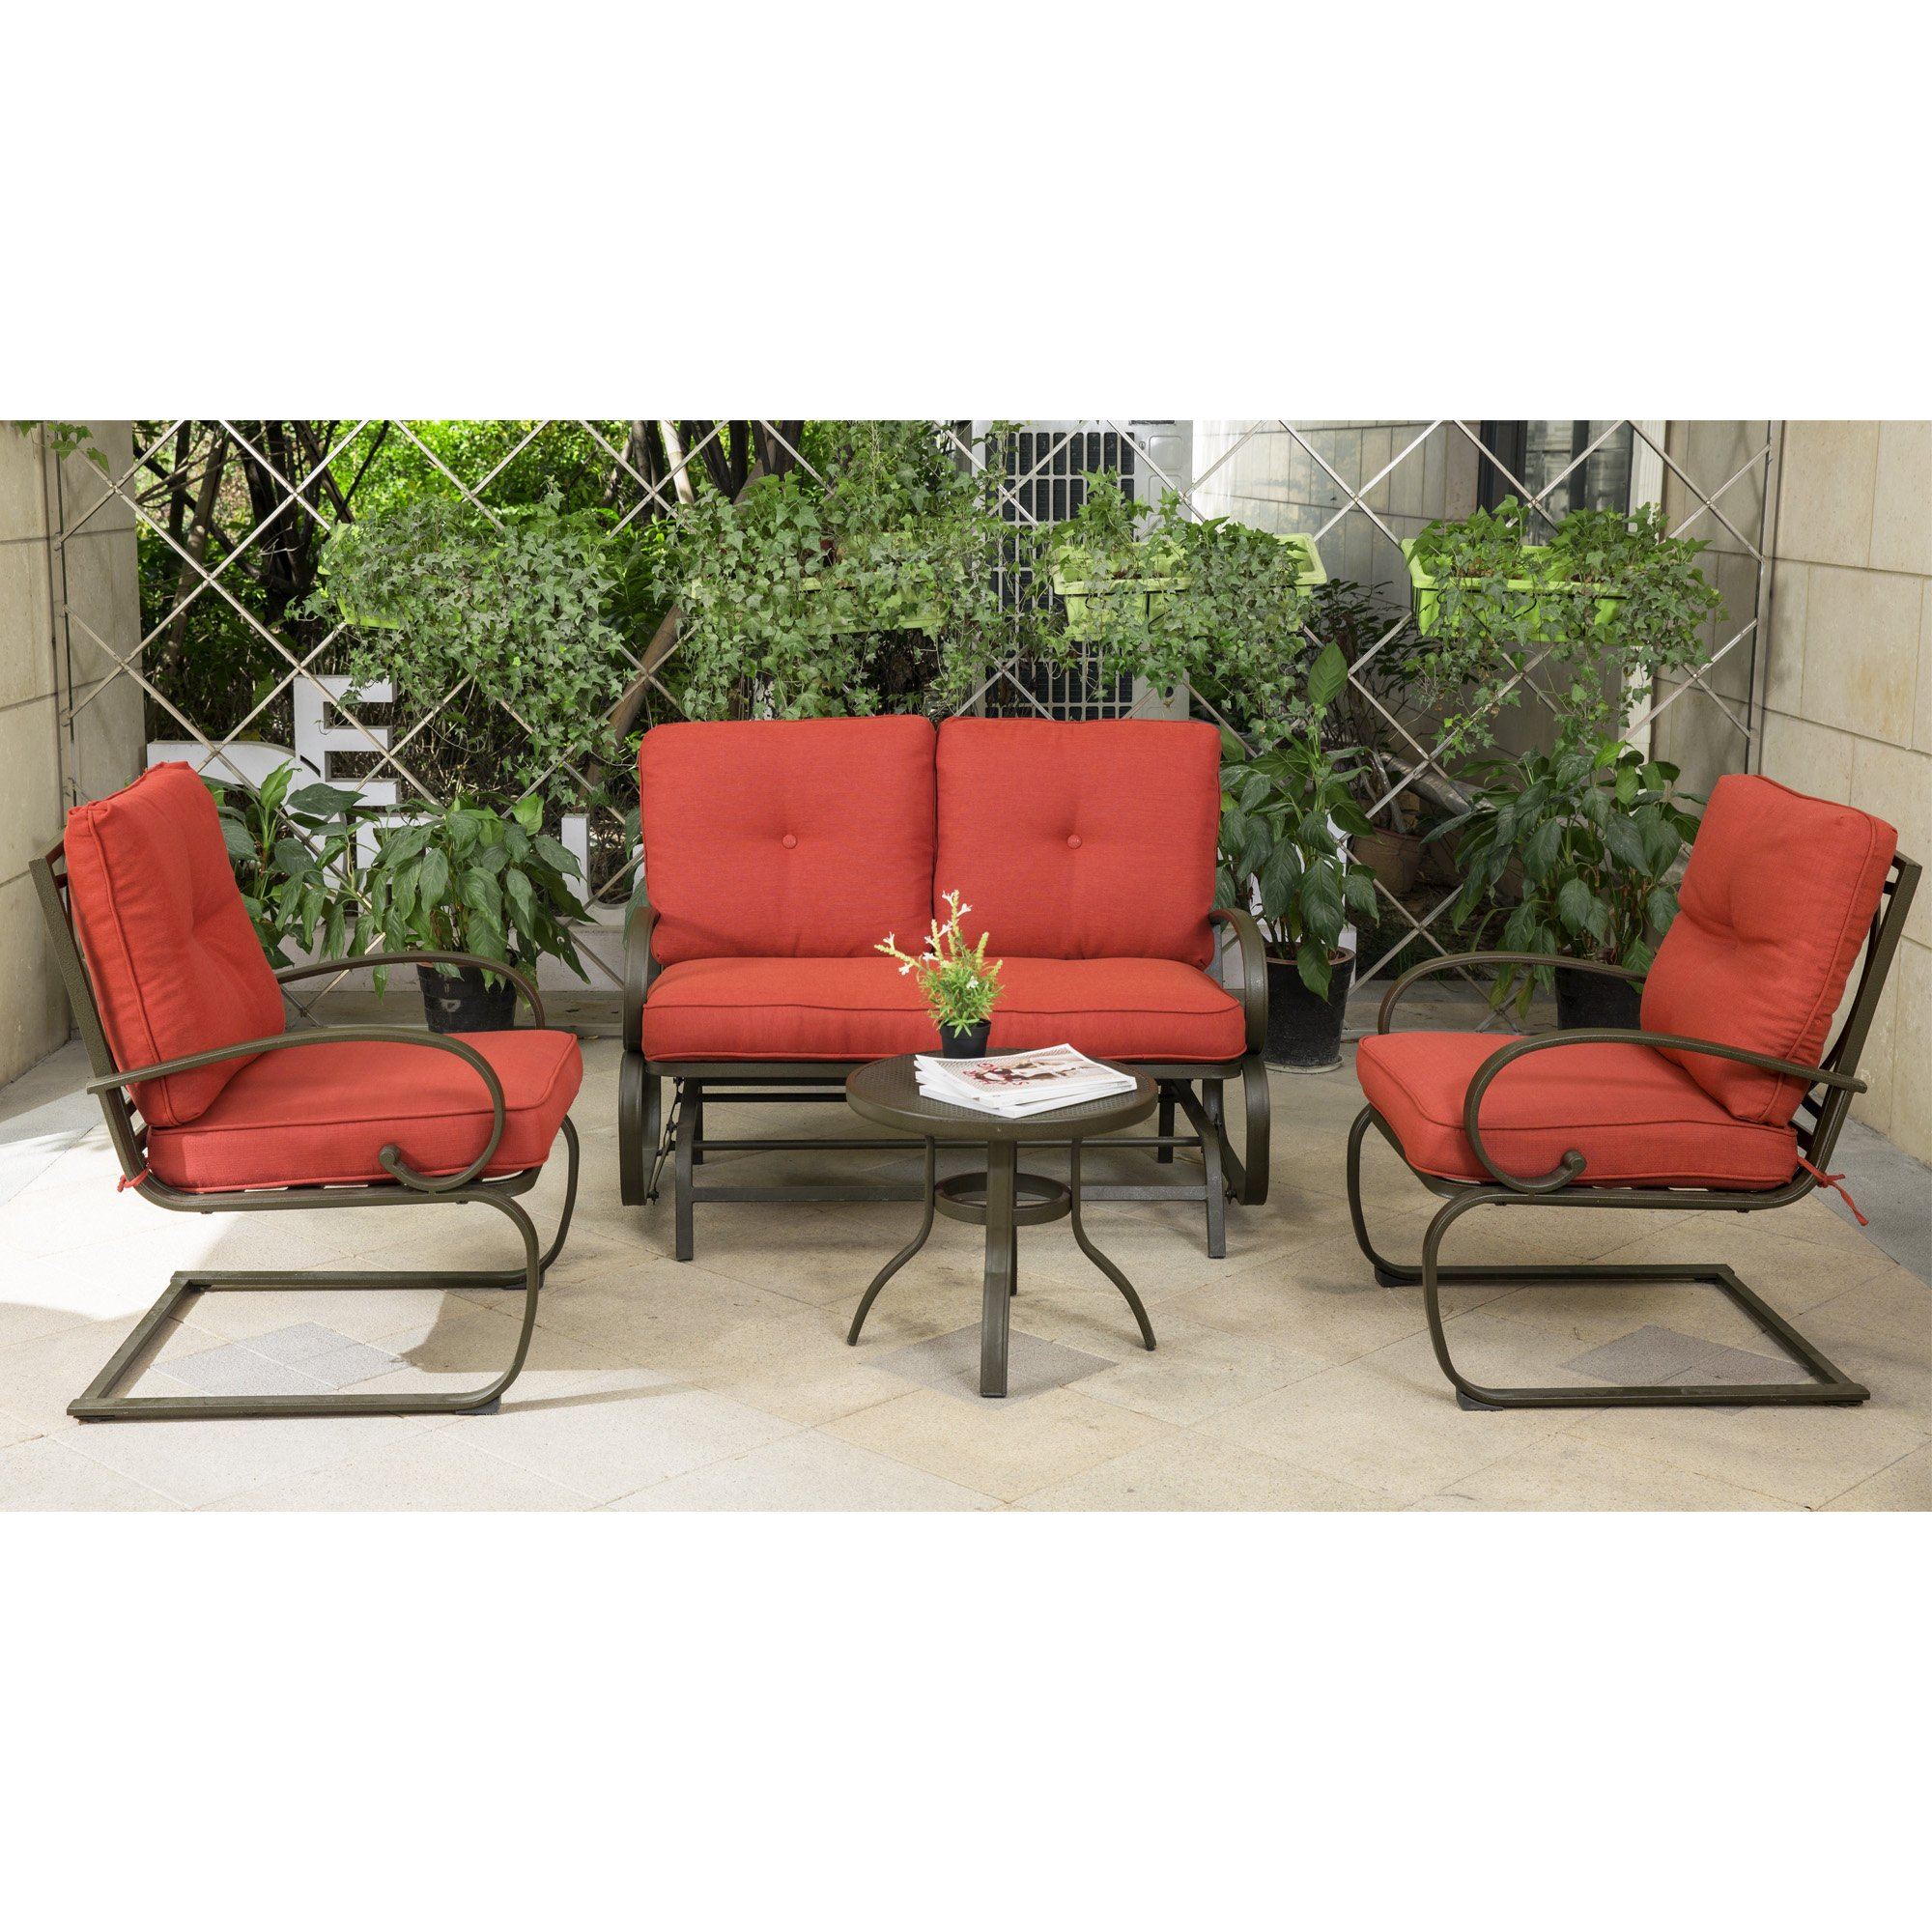 Cloud Mountain 4 Piece Cushioned Outdoor Furniture Garden Patio Conversation Set, Wrought Iron Coffee Table Loveseat Sofa 2 Chairs (Patio Conversation Set 3, Brick Red)